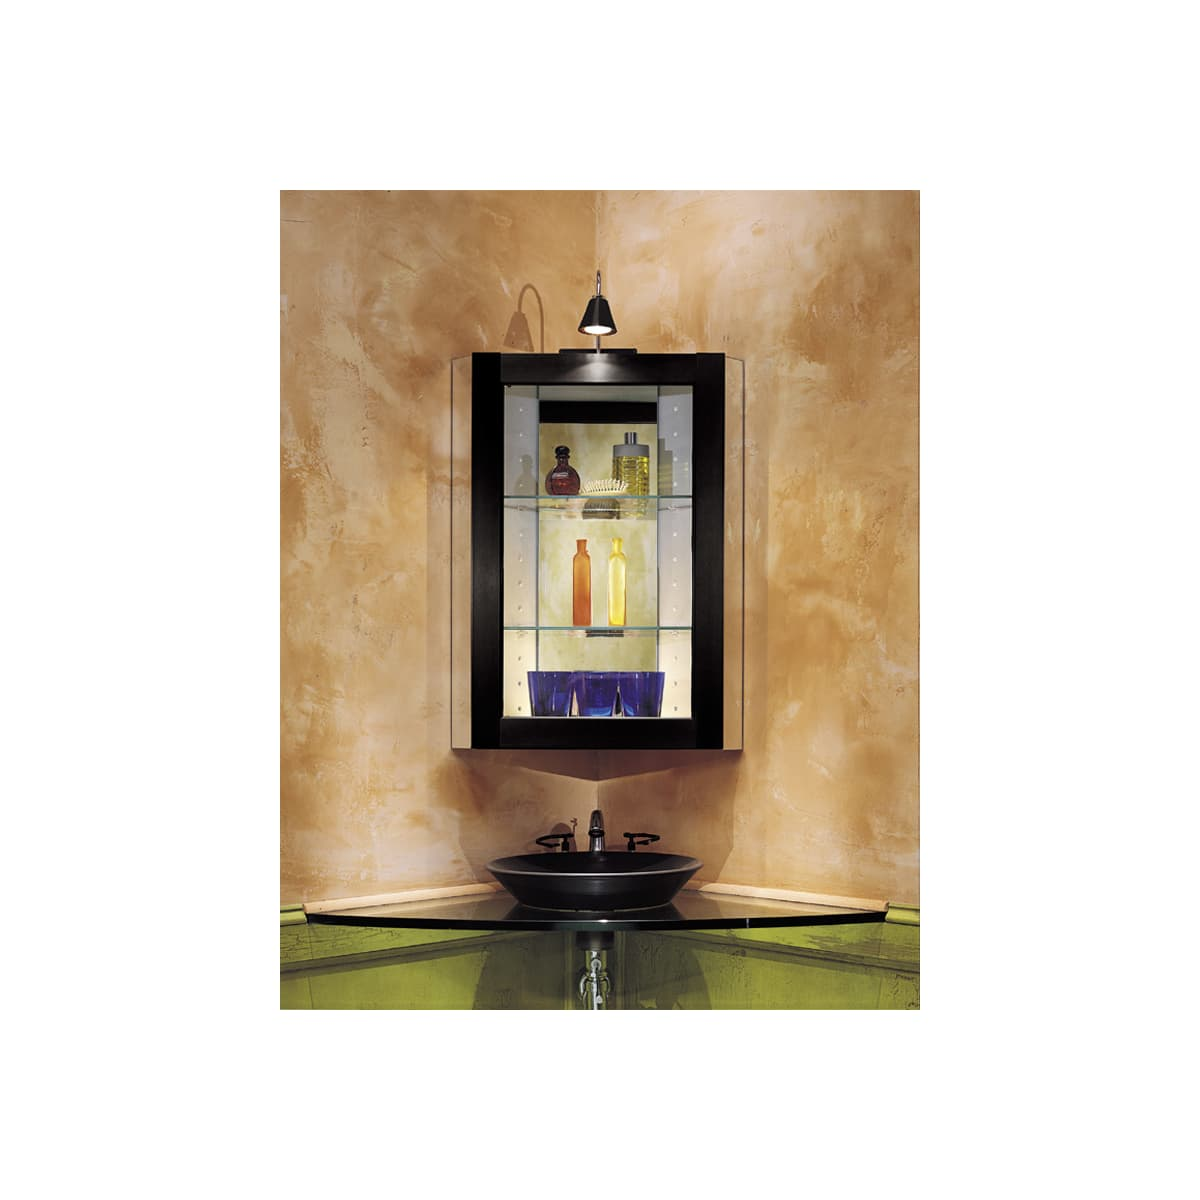 Robern Ft20c8wcn White 19 1 4 Corner Medicine Cabinet From The Ft Collection Faucetdirect Com